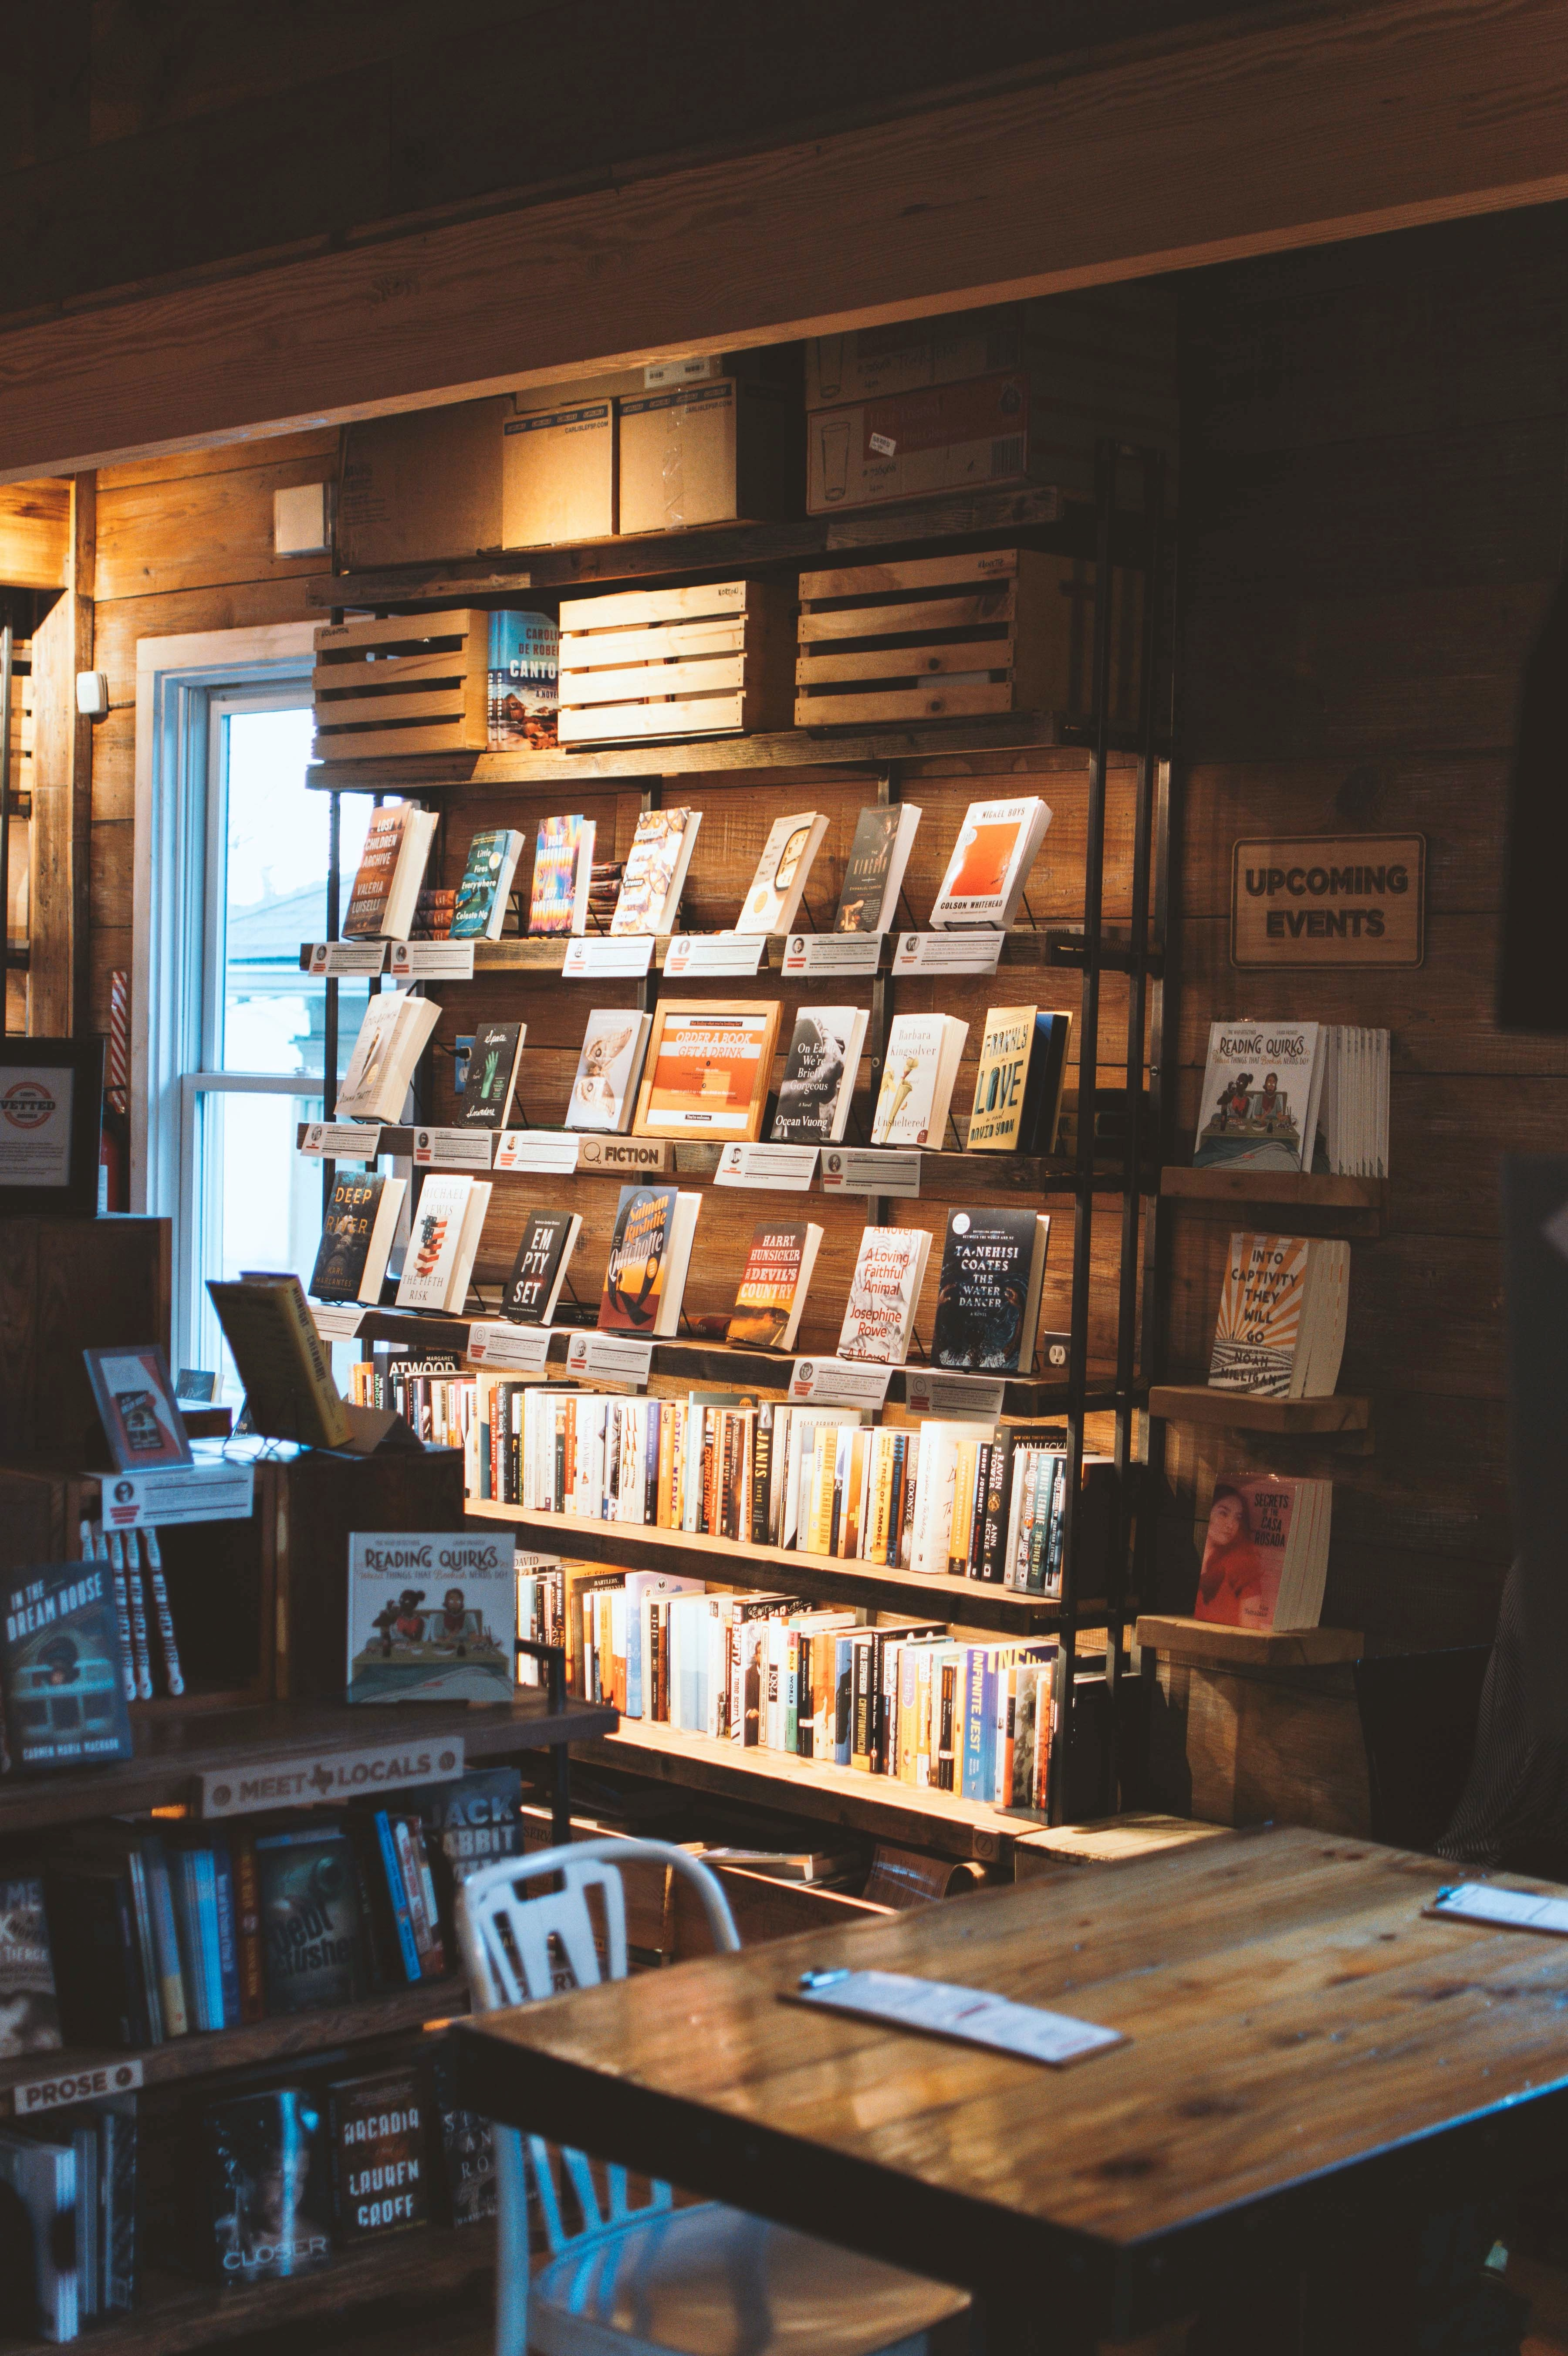 How Time Stops in Bookshops